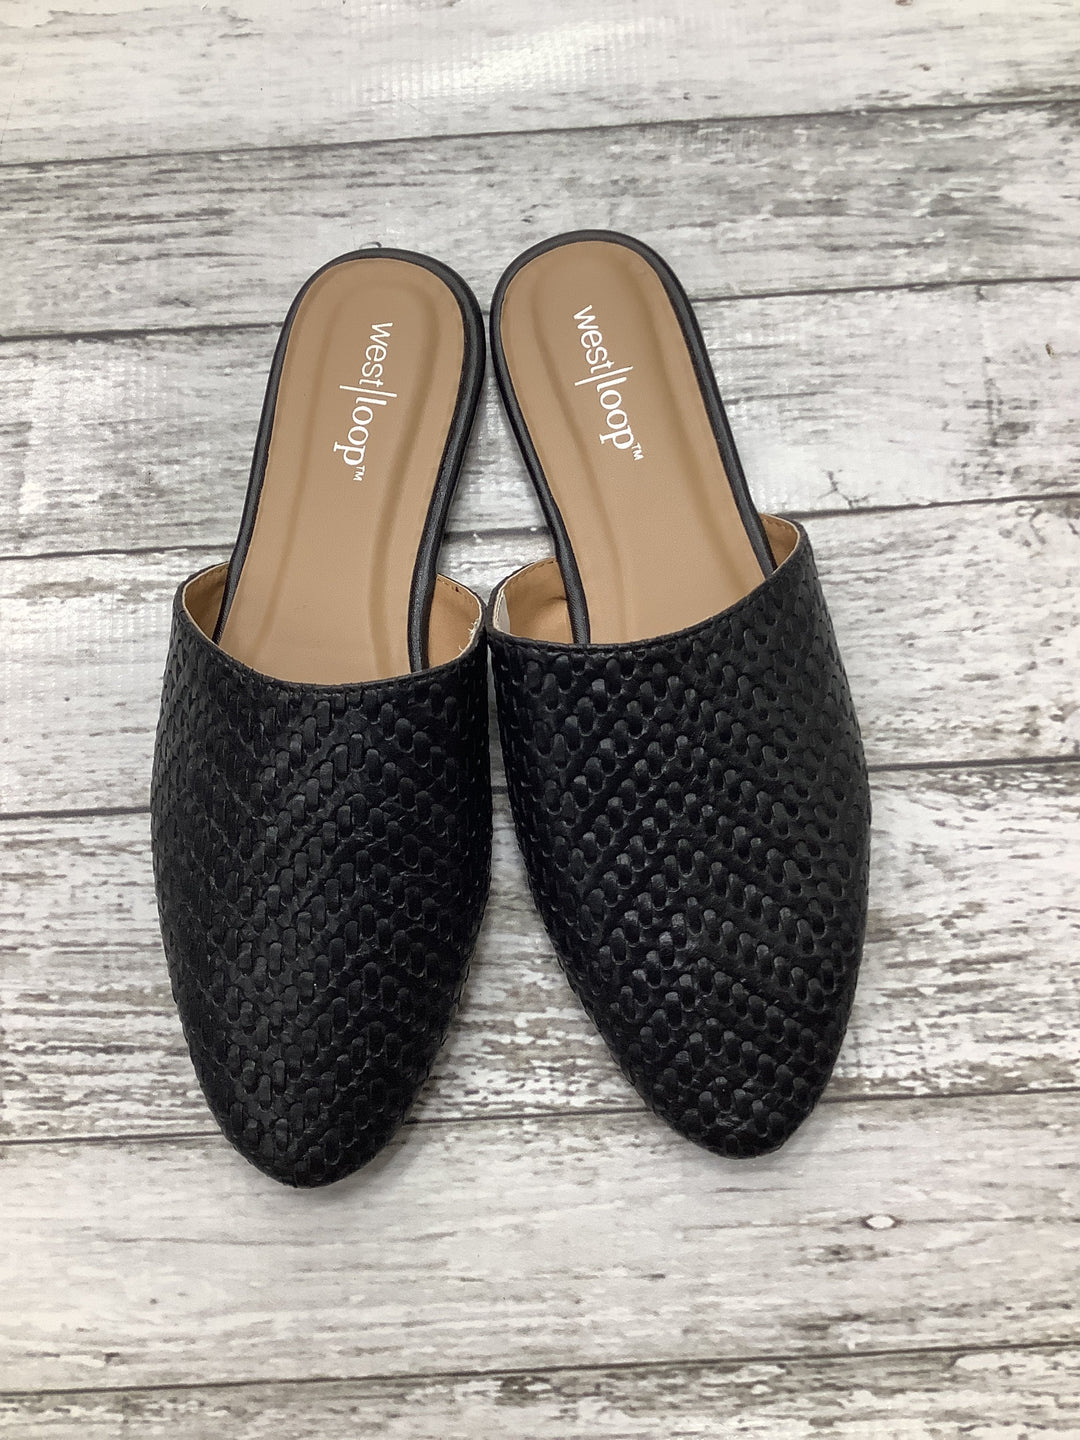 Primary Photo - brand:    cmd , style: shoes flats , color: black , size: 5.5 , sku: